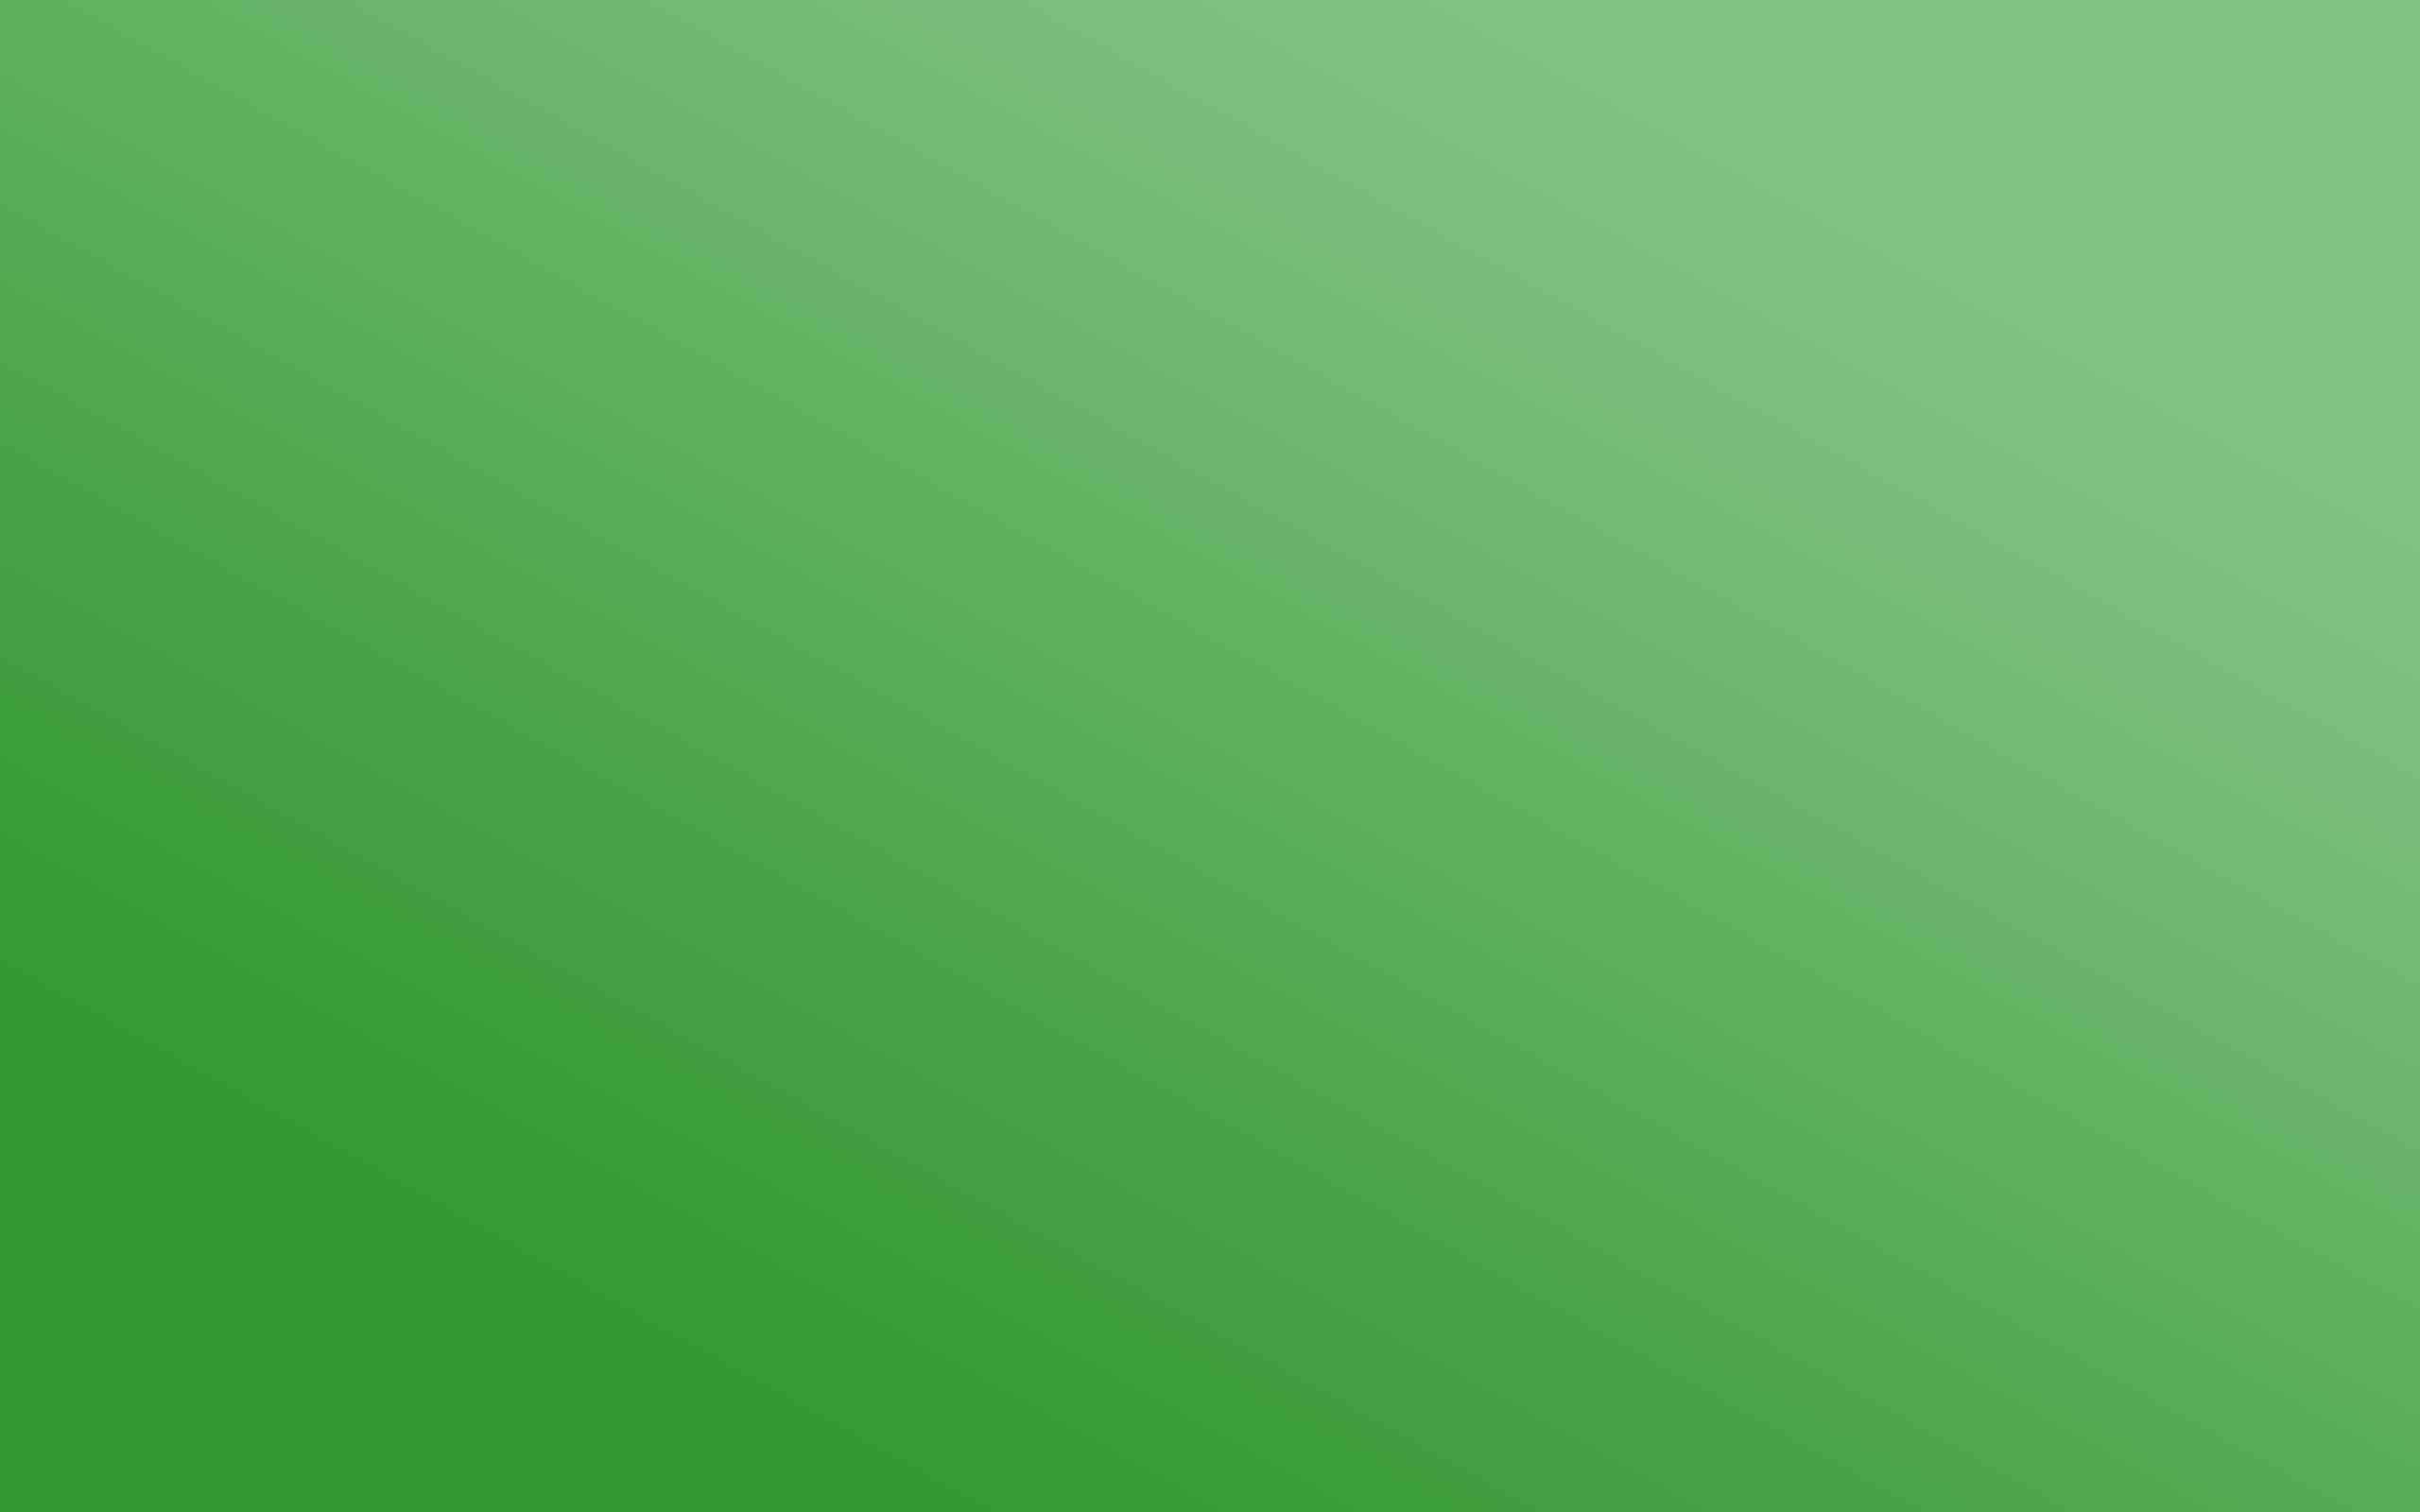 Solid Green Color Wallpaper